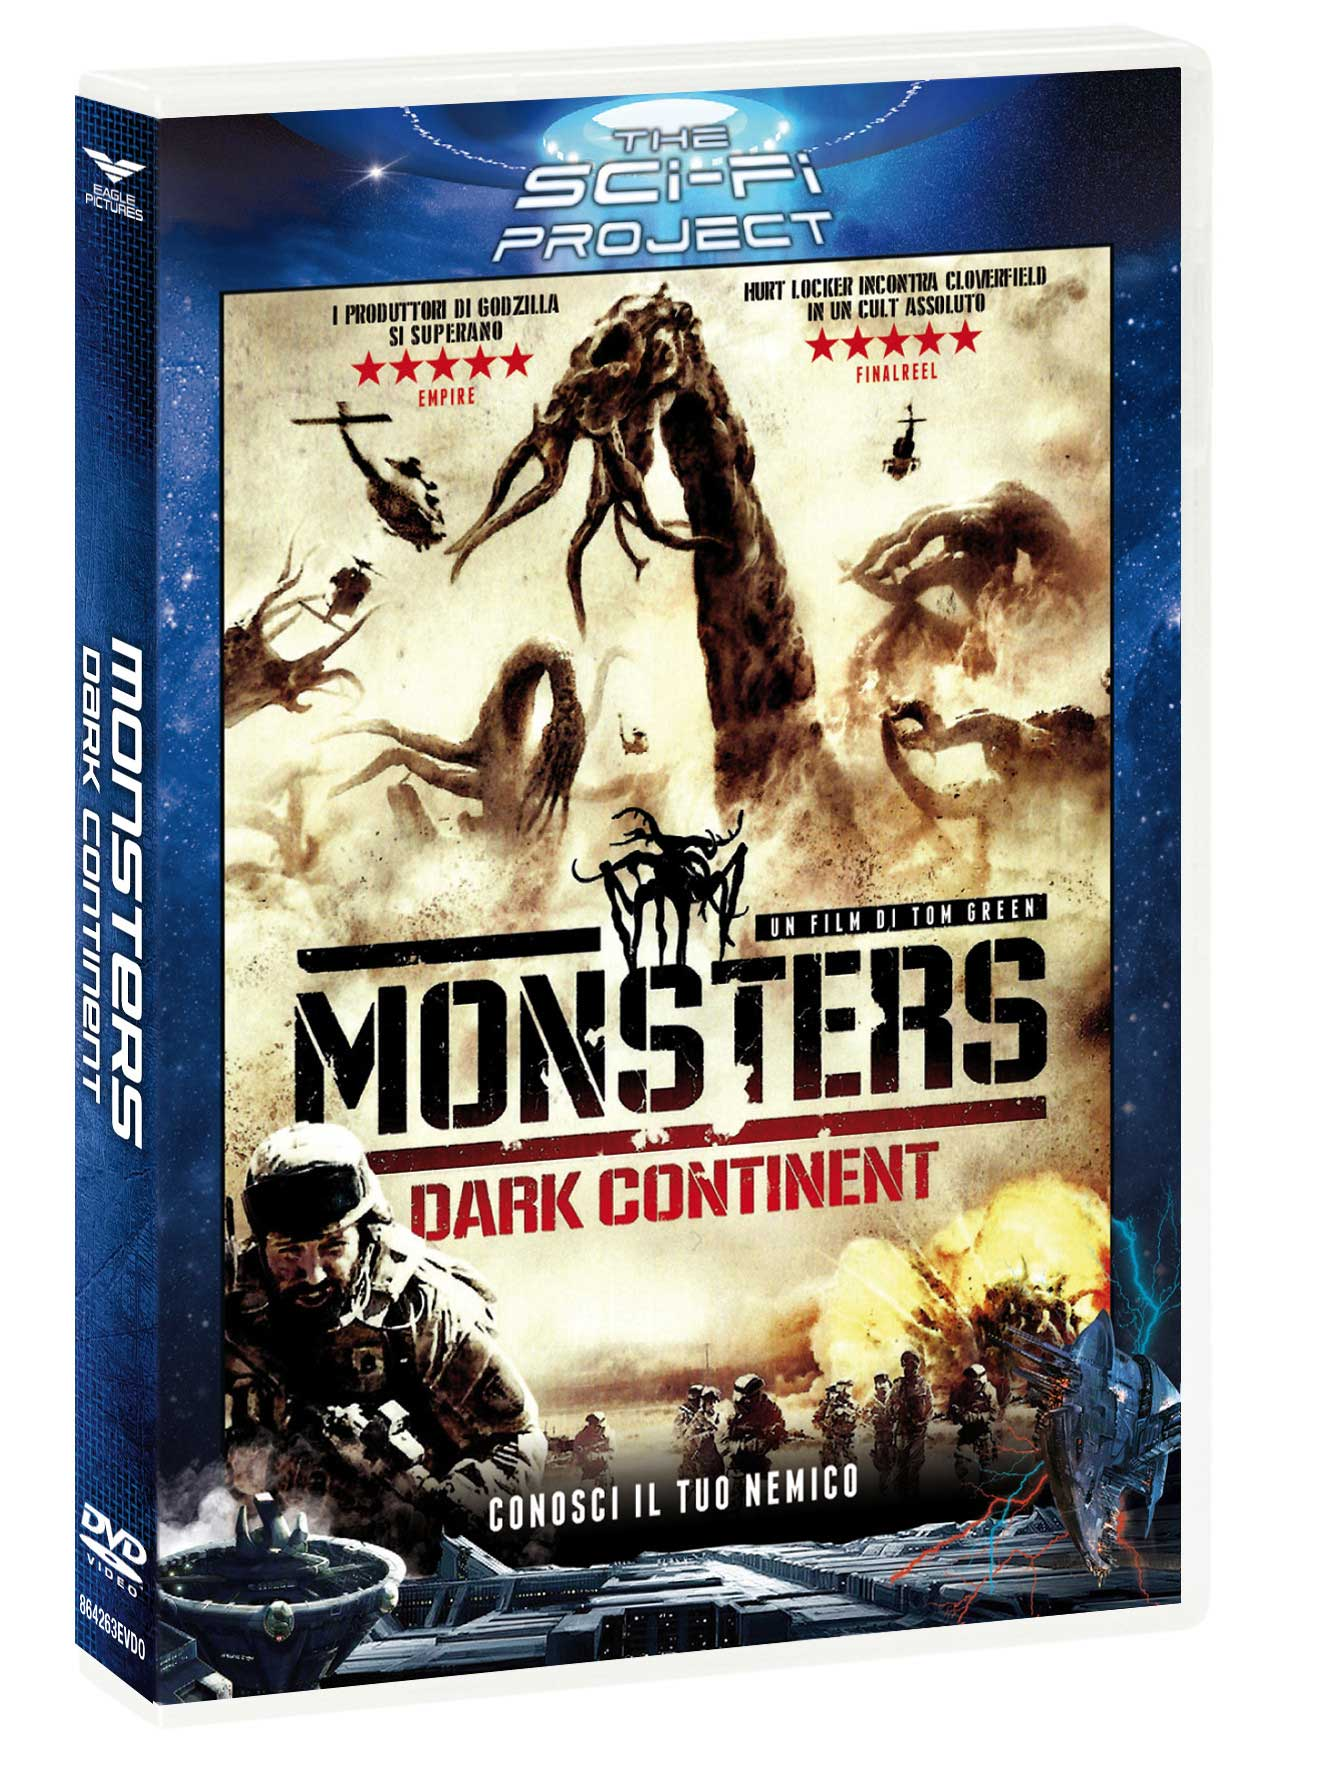 MONSTERS - DARK CONTINENT (SCI-FI PROJECT) (DVD)